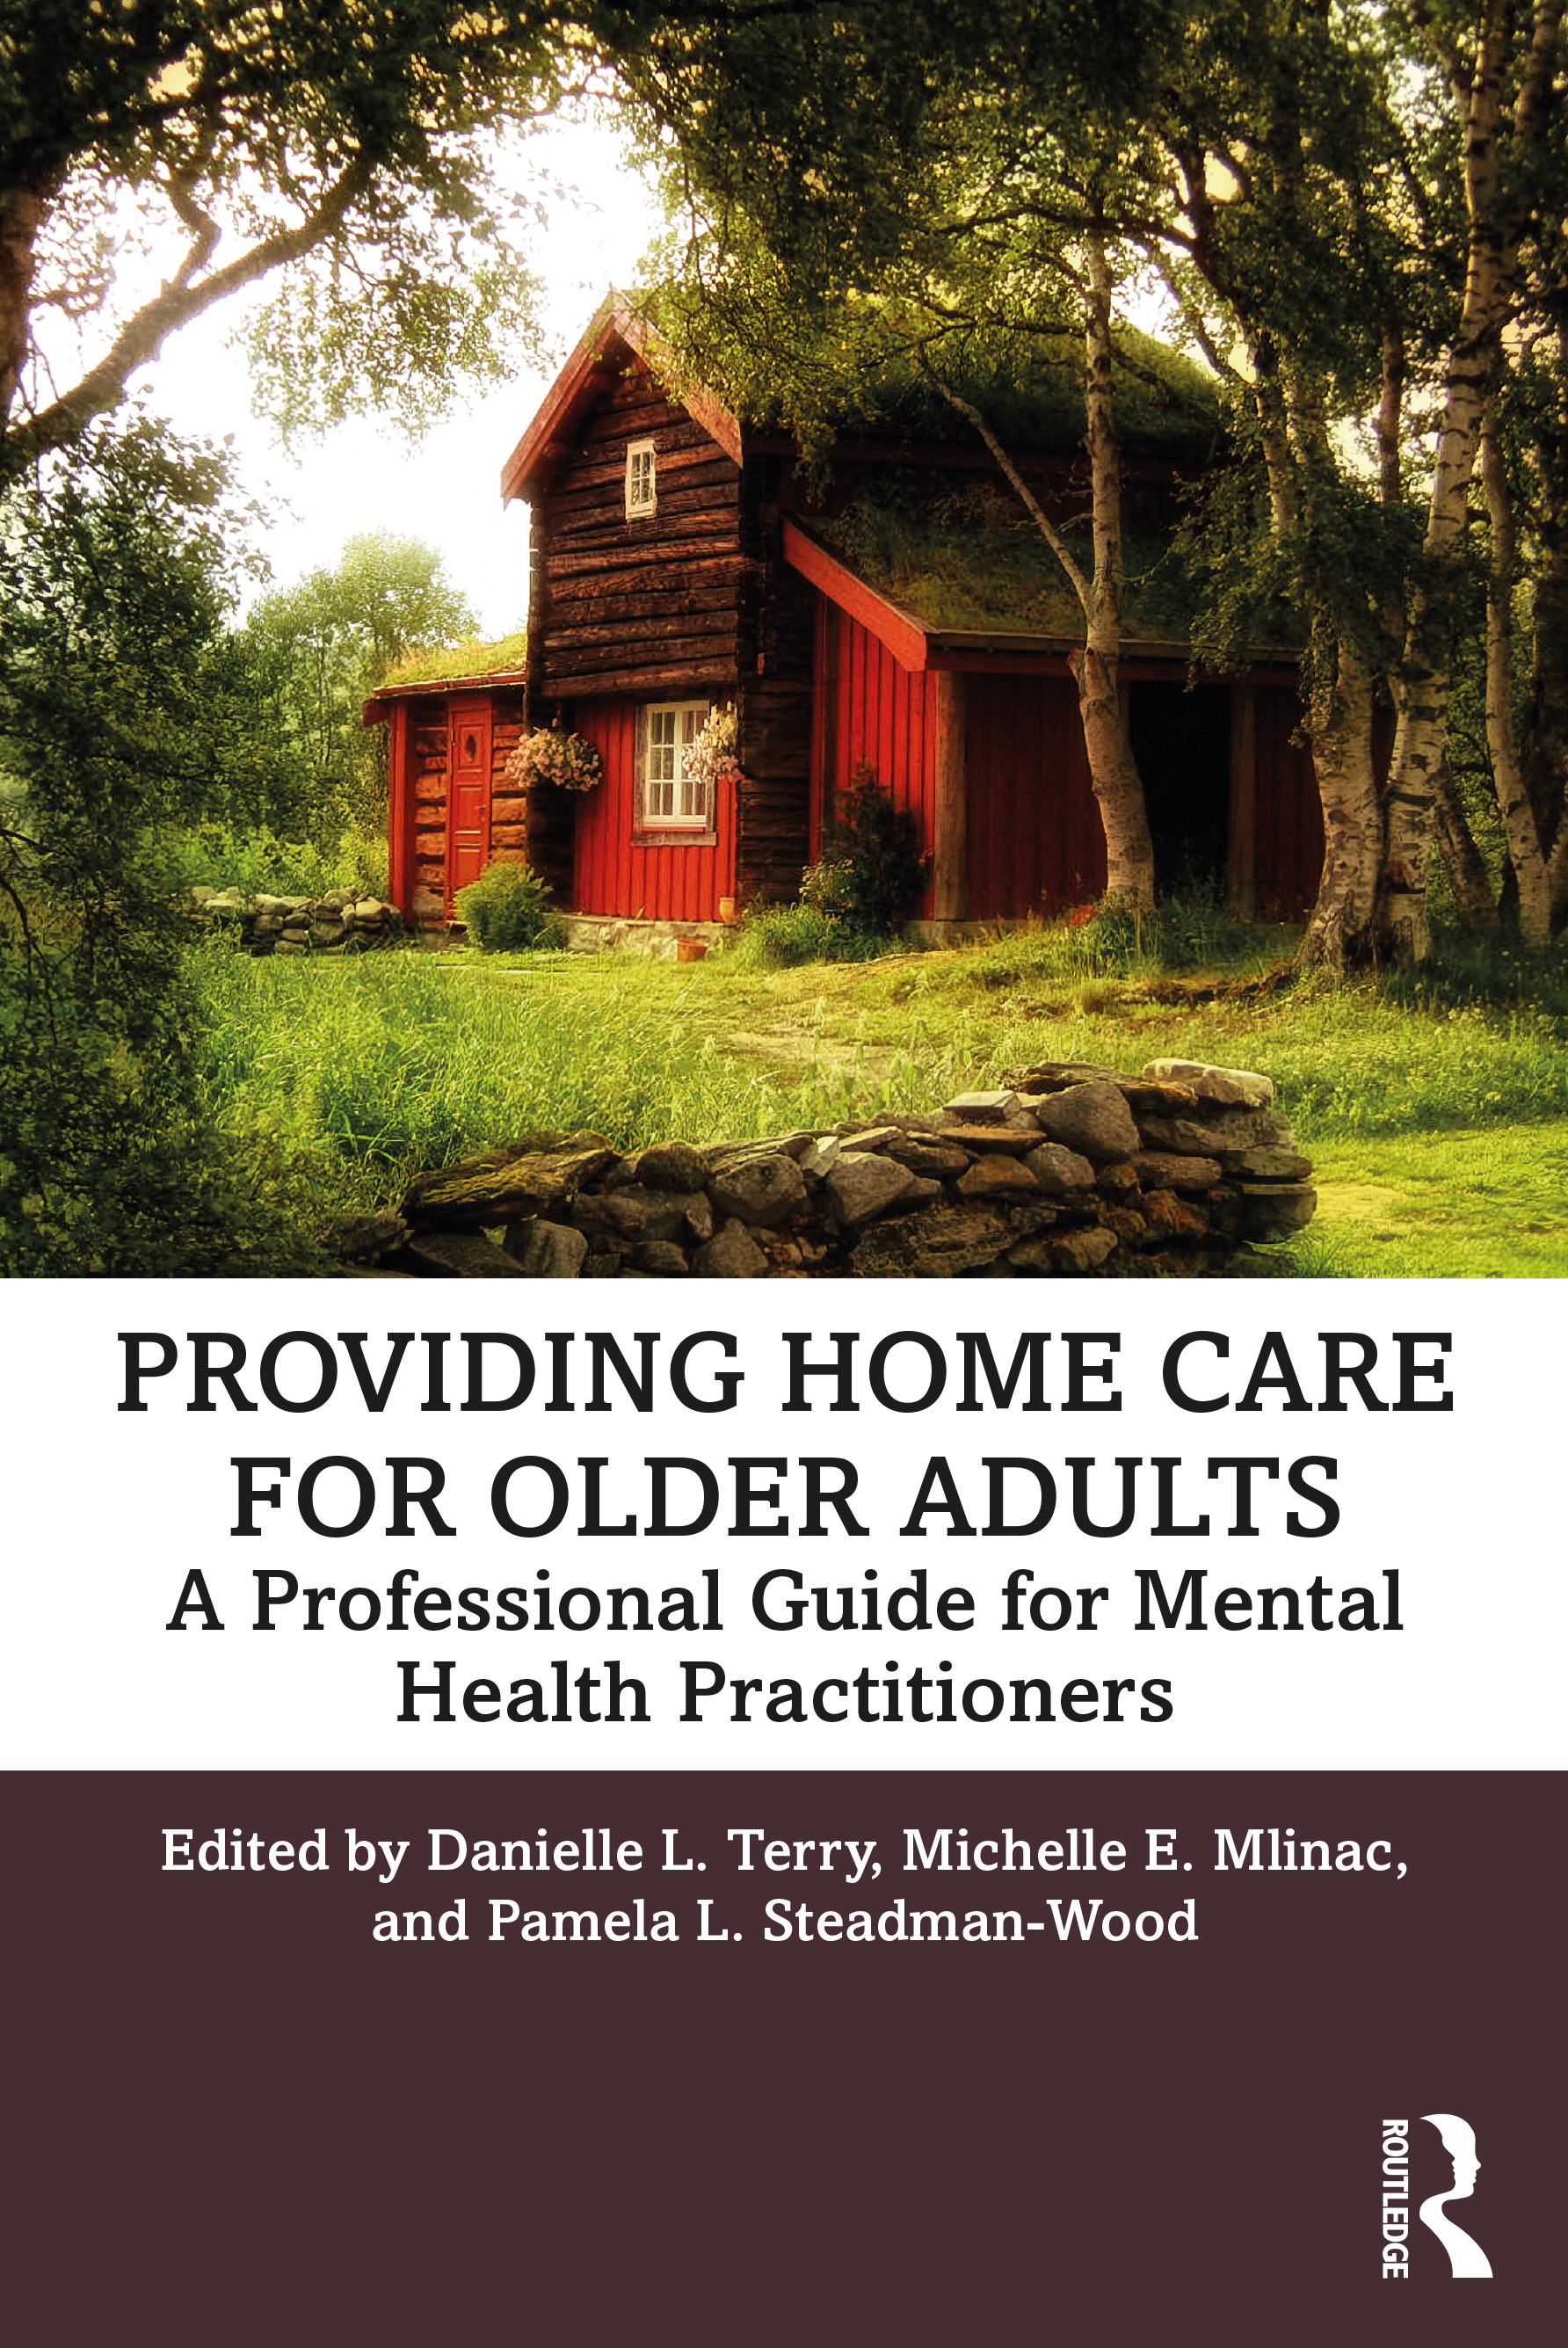 Providing Home Care for Older Adults: A Professional Guide for Mental Health Practitioners book cover